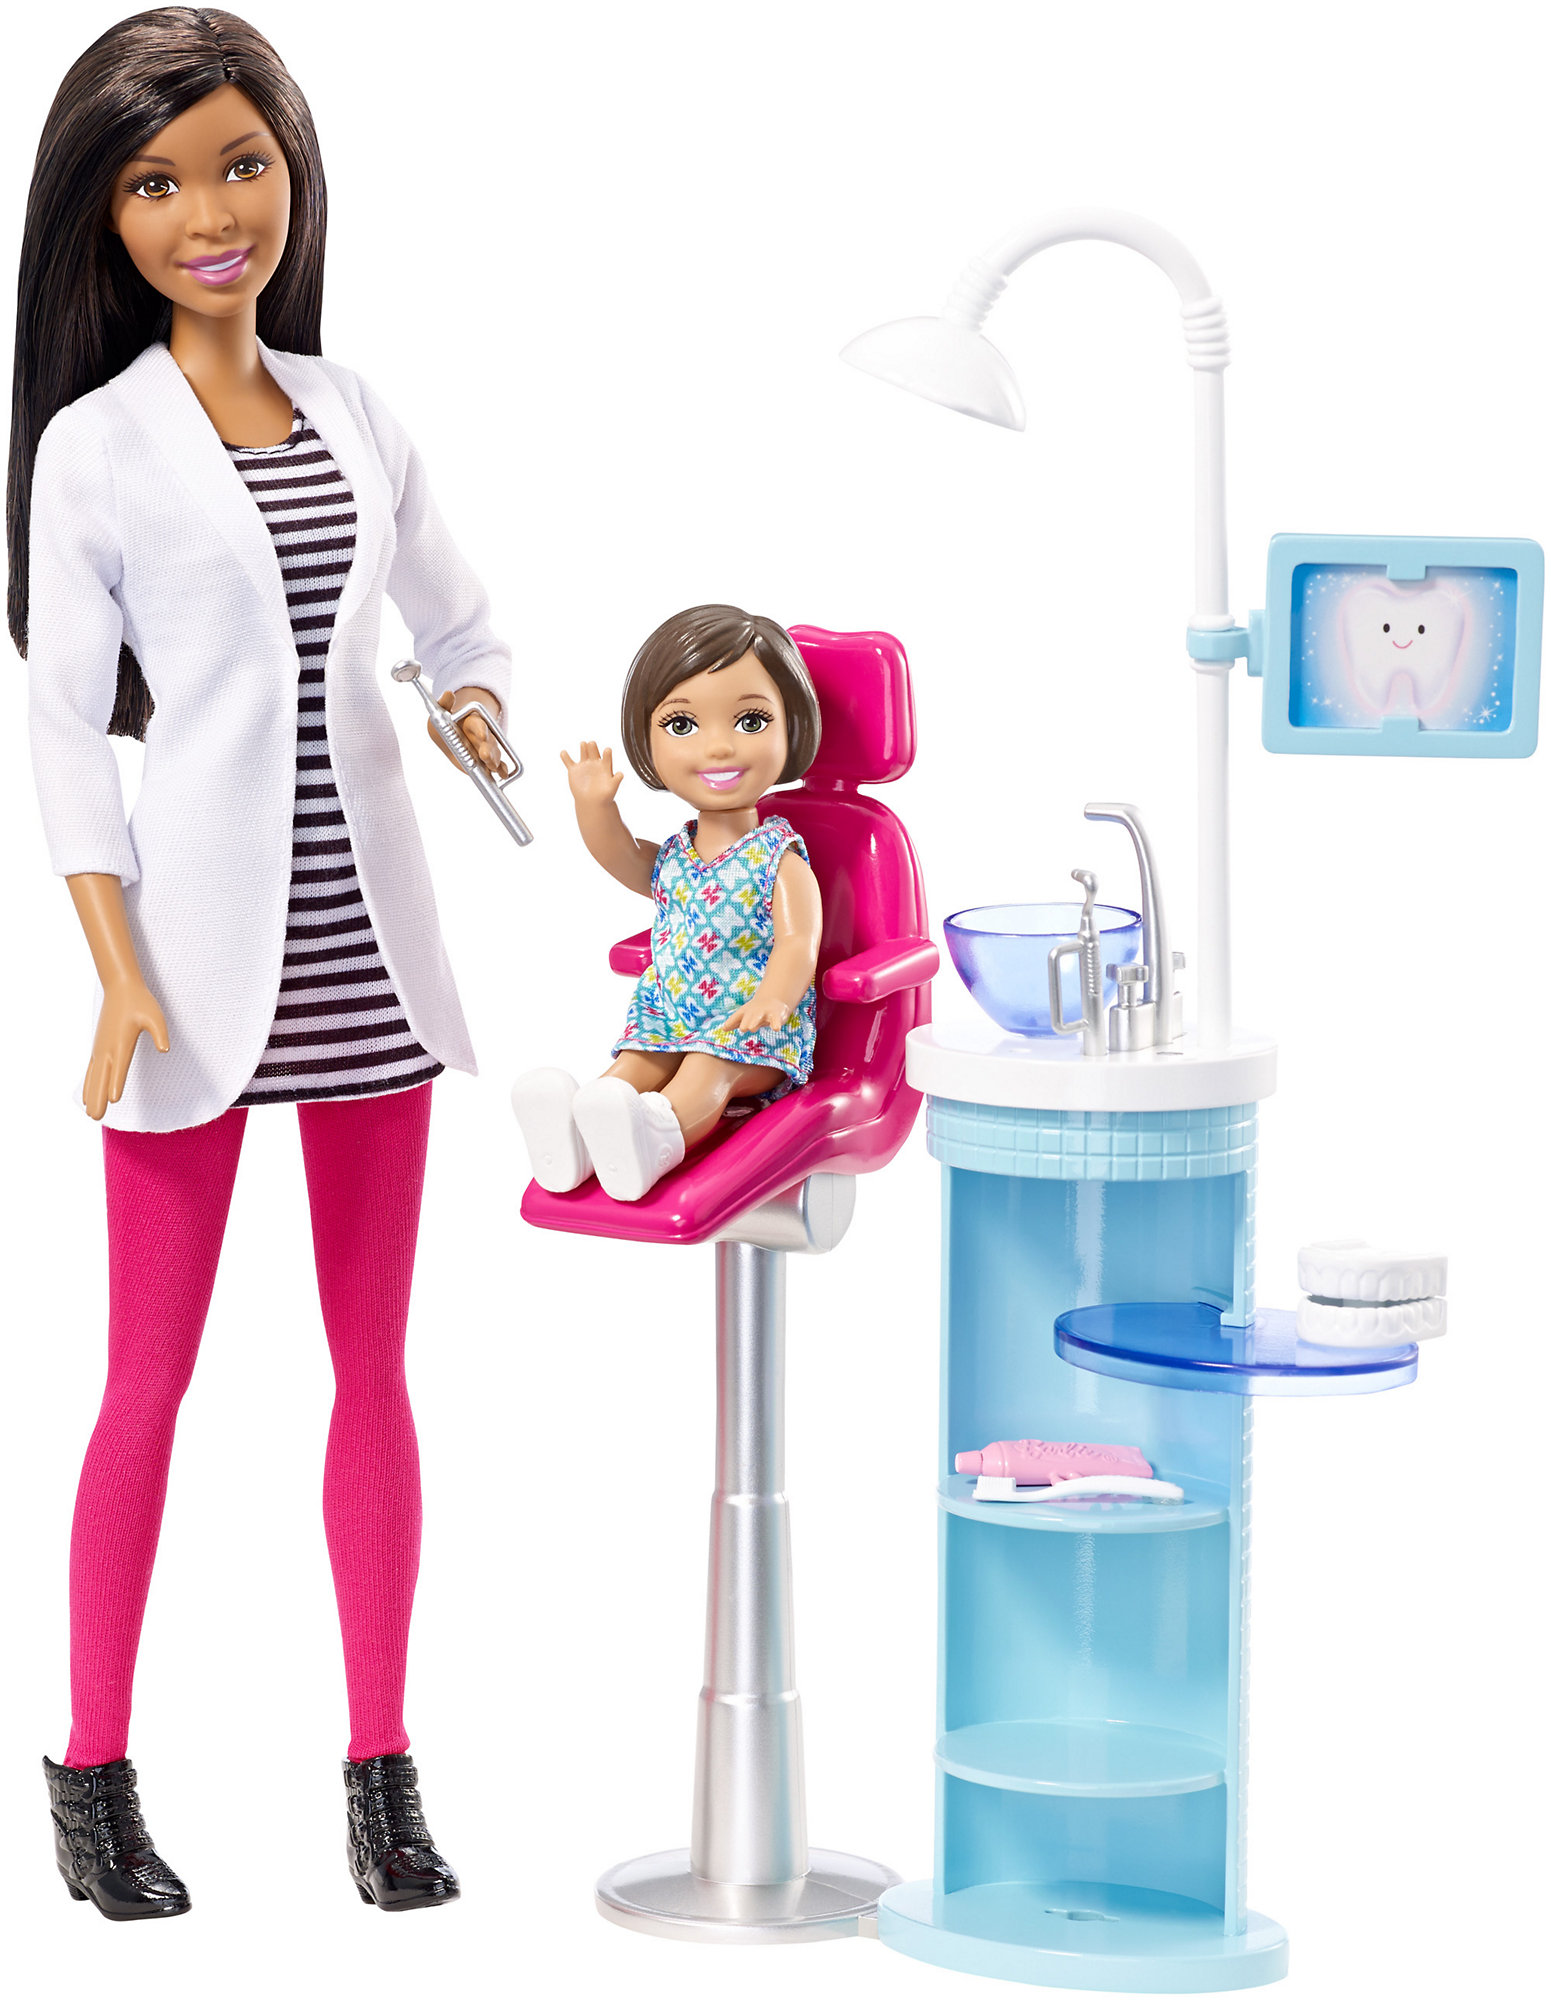 Barbie Dentist Doll & Playset by Mattel